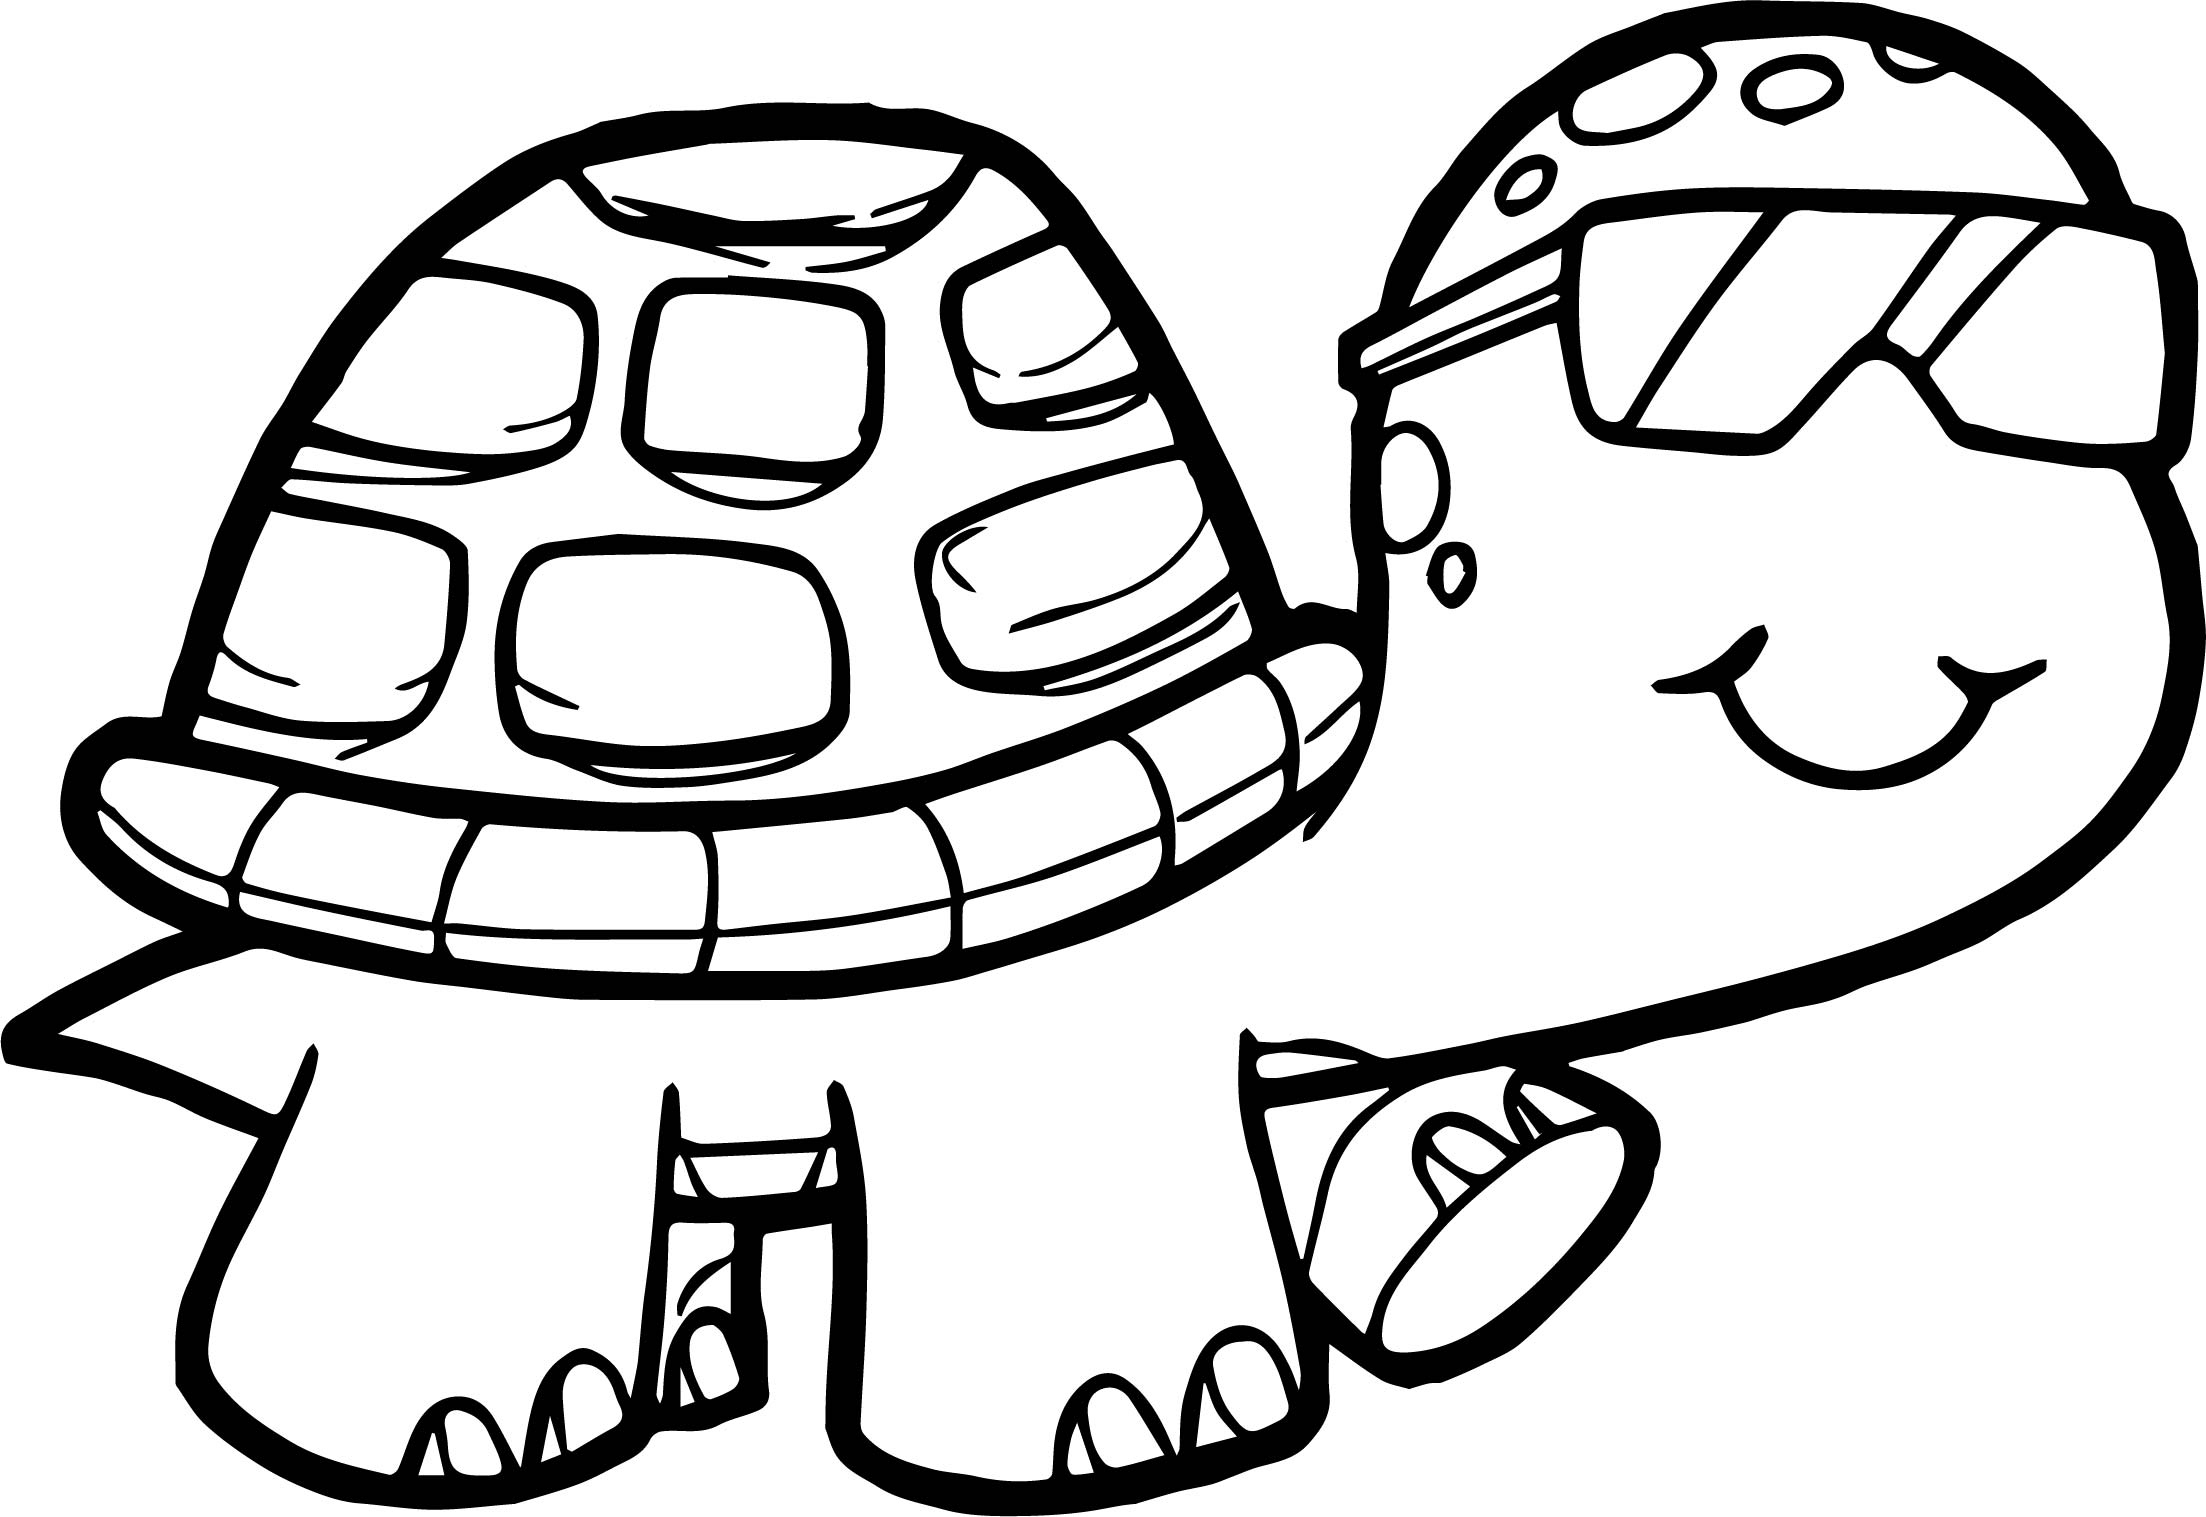 turtles colouring turtles coloring pages download and print turtles turtles colouring